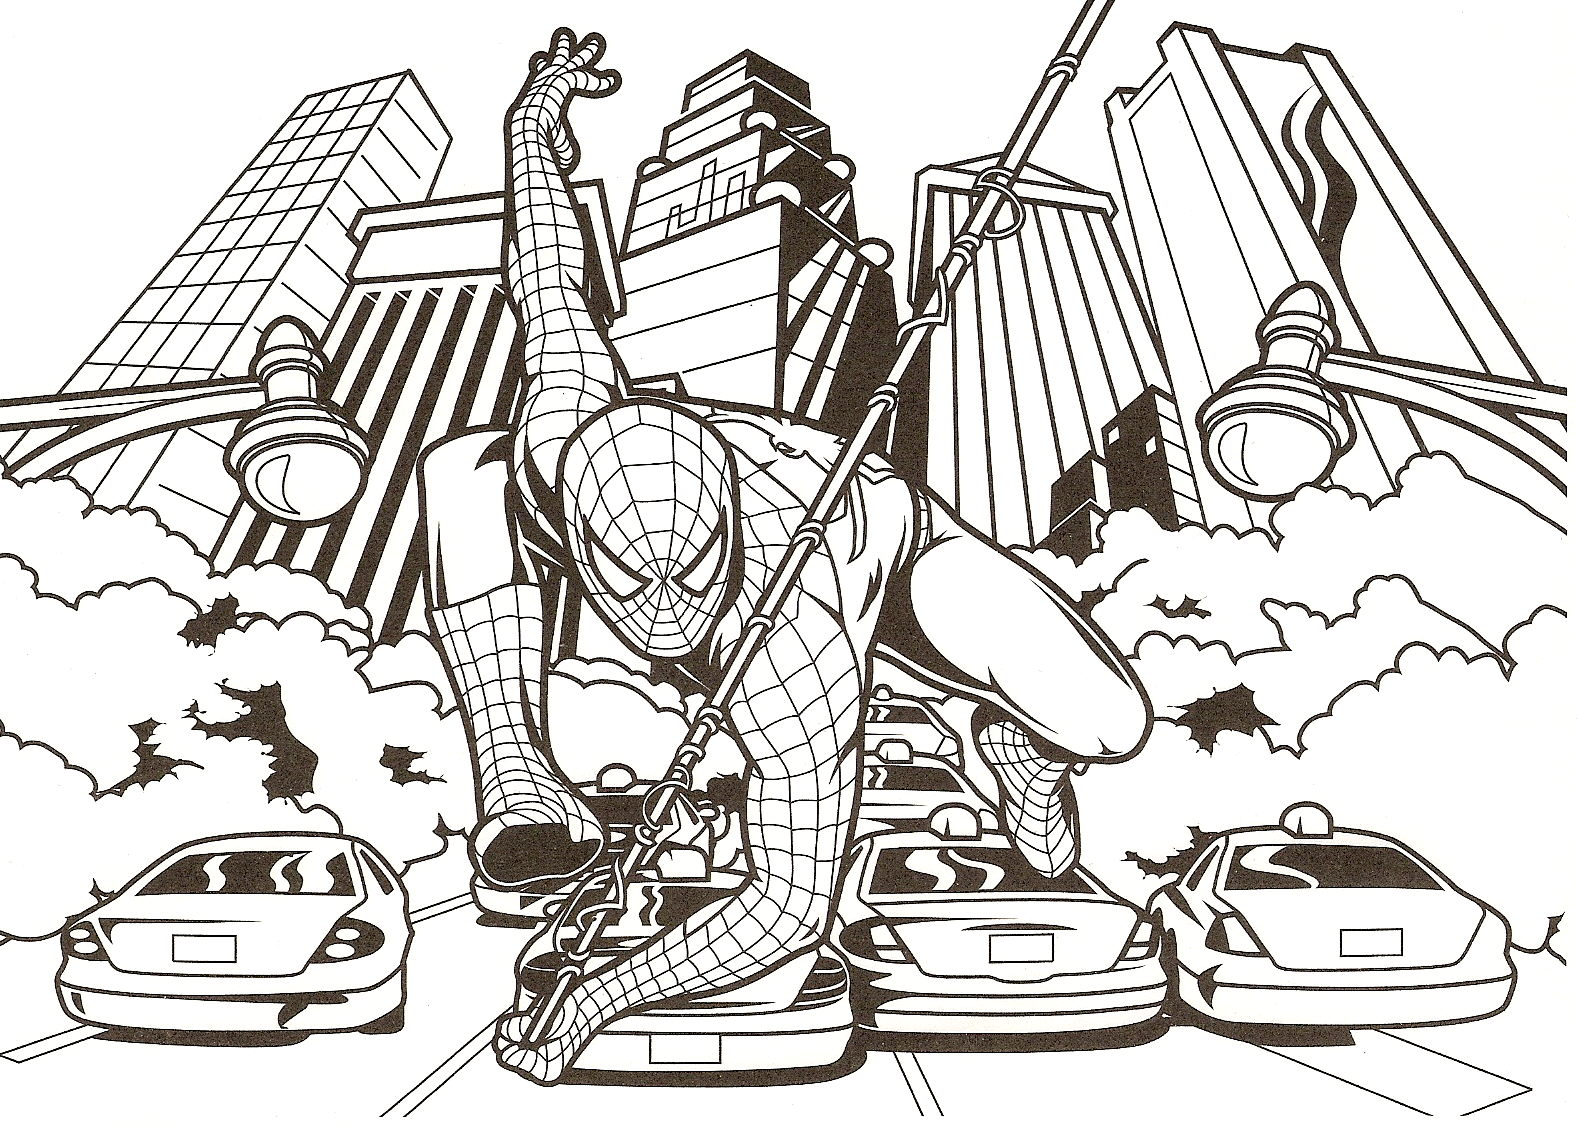 Baby spiderman coloring pages at getcolorings. Spiderman Coloring Printable Spiderman Coloring Pictures